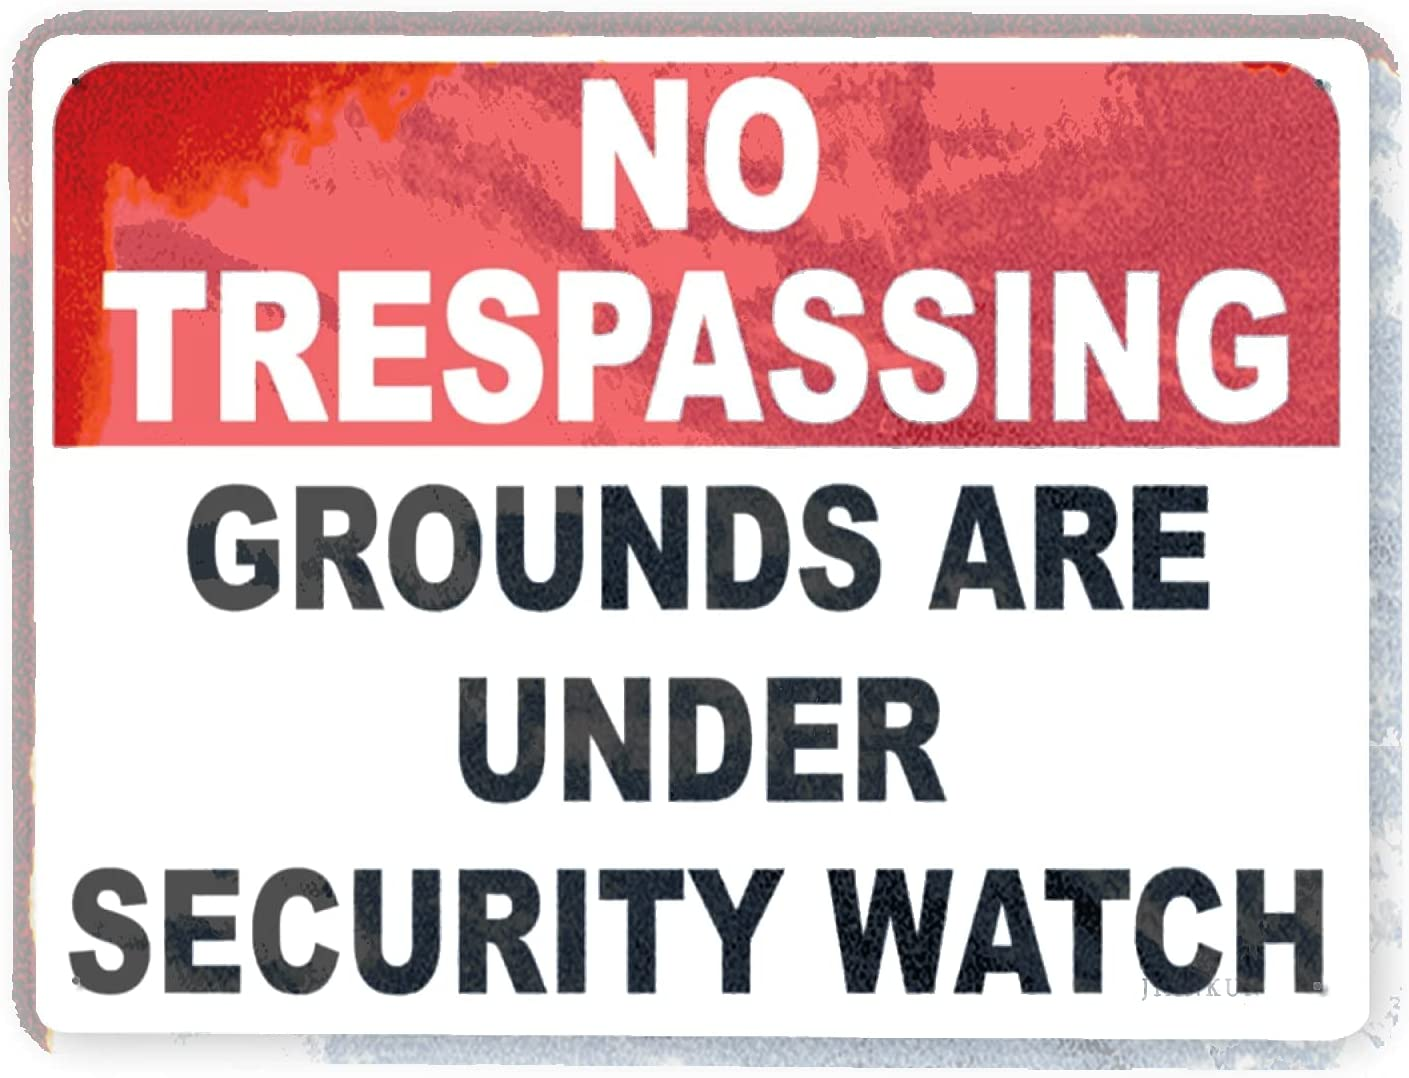 J.DXHYA Man Cave Decor Mail order cheap 2 Pieces no Warning Grou Sign New color Trespassing